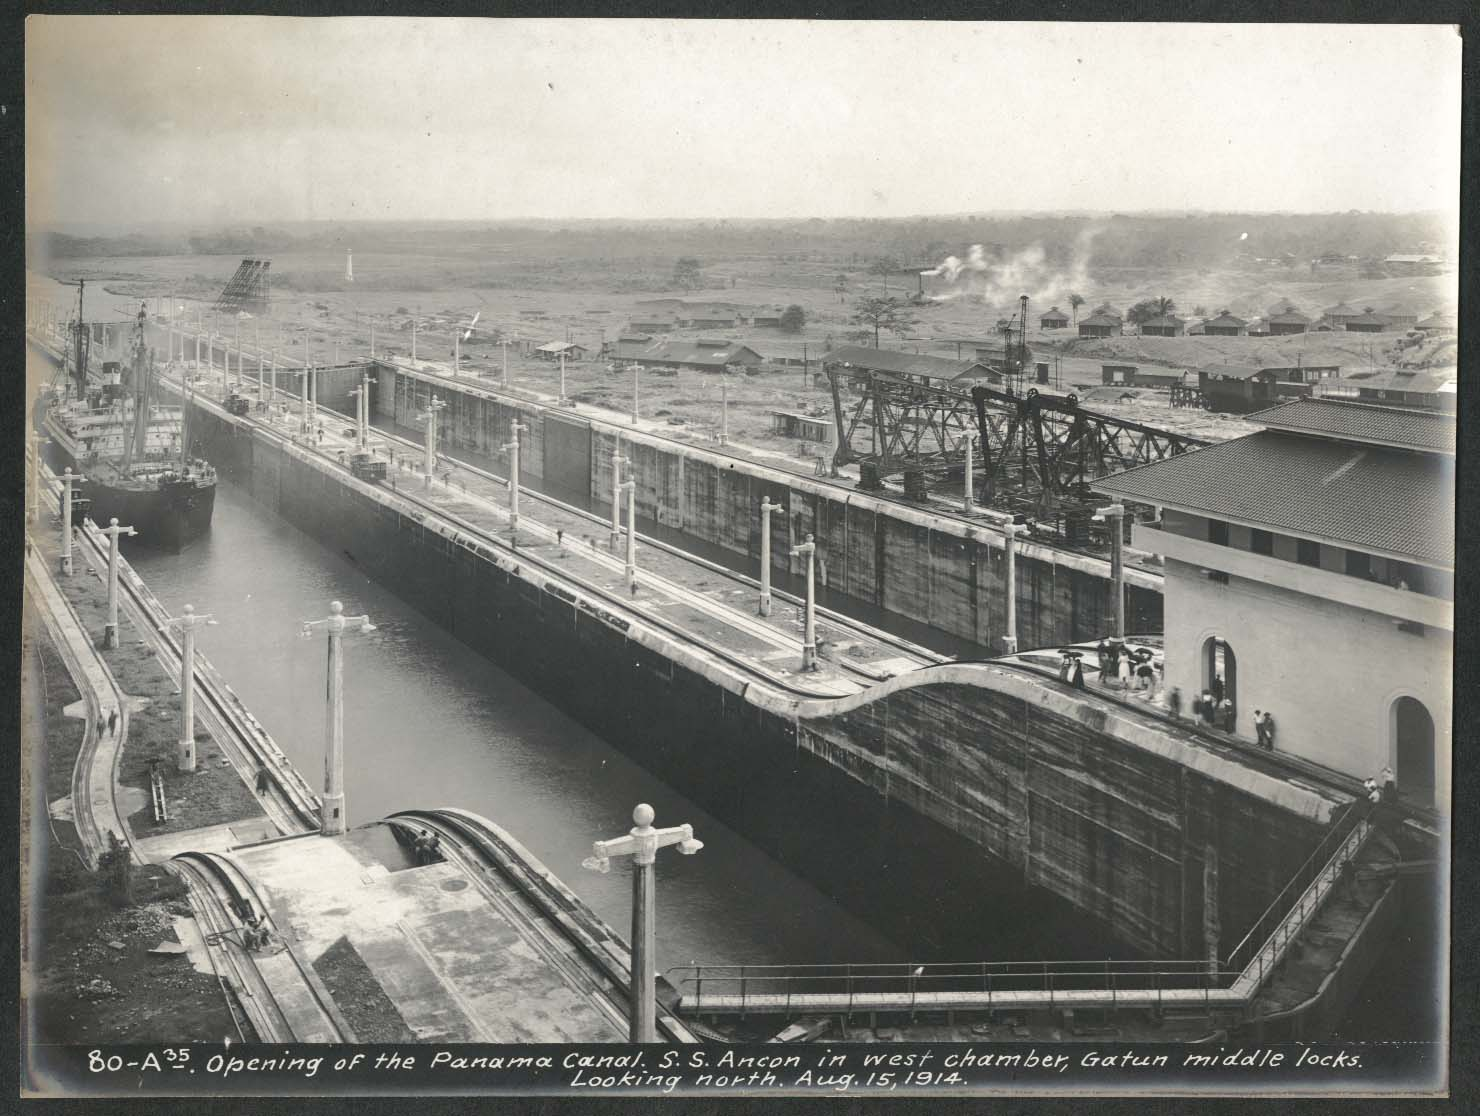 Image for Panama Canal photo 1914 Opening of canal S S Ancon at Gatun middle locks